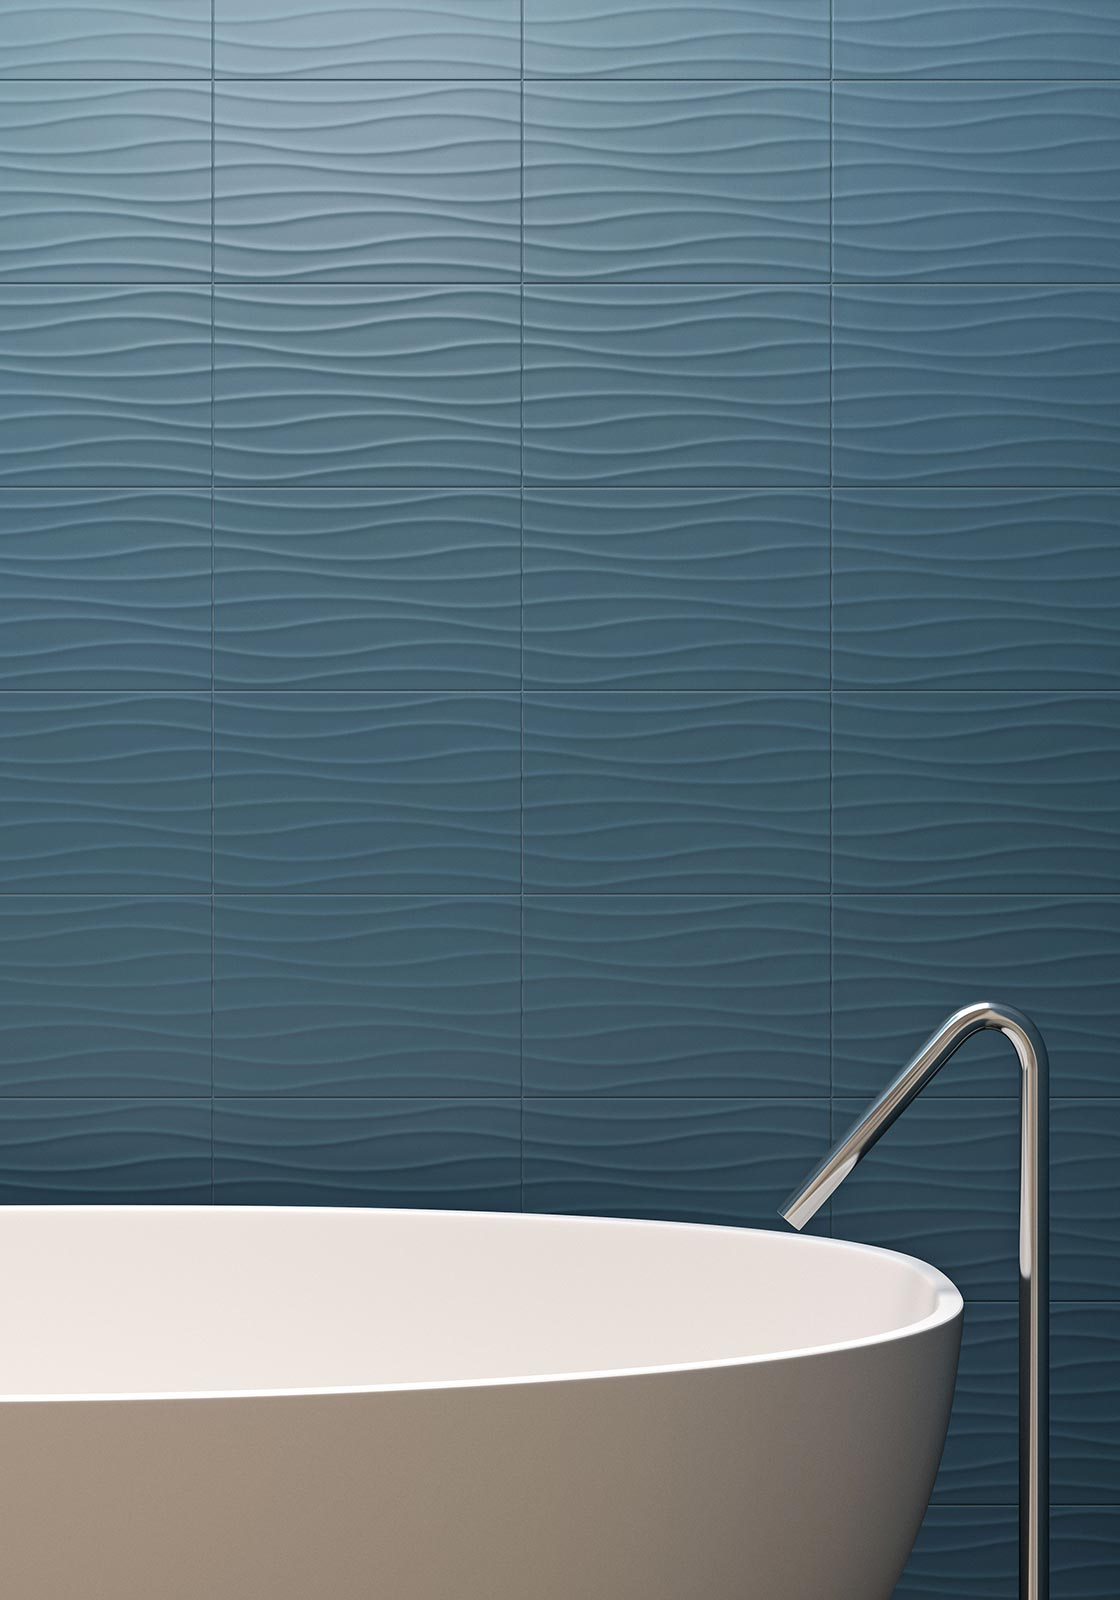 Neutral bathroom and kitchen tiles marazzi neutral ceramic tiles marazzi7442 dailygadgetfo Image collections